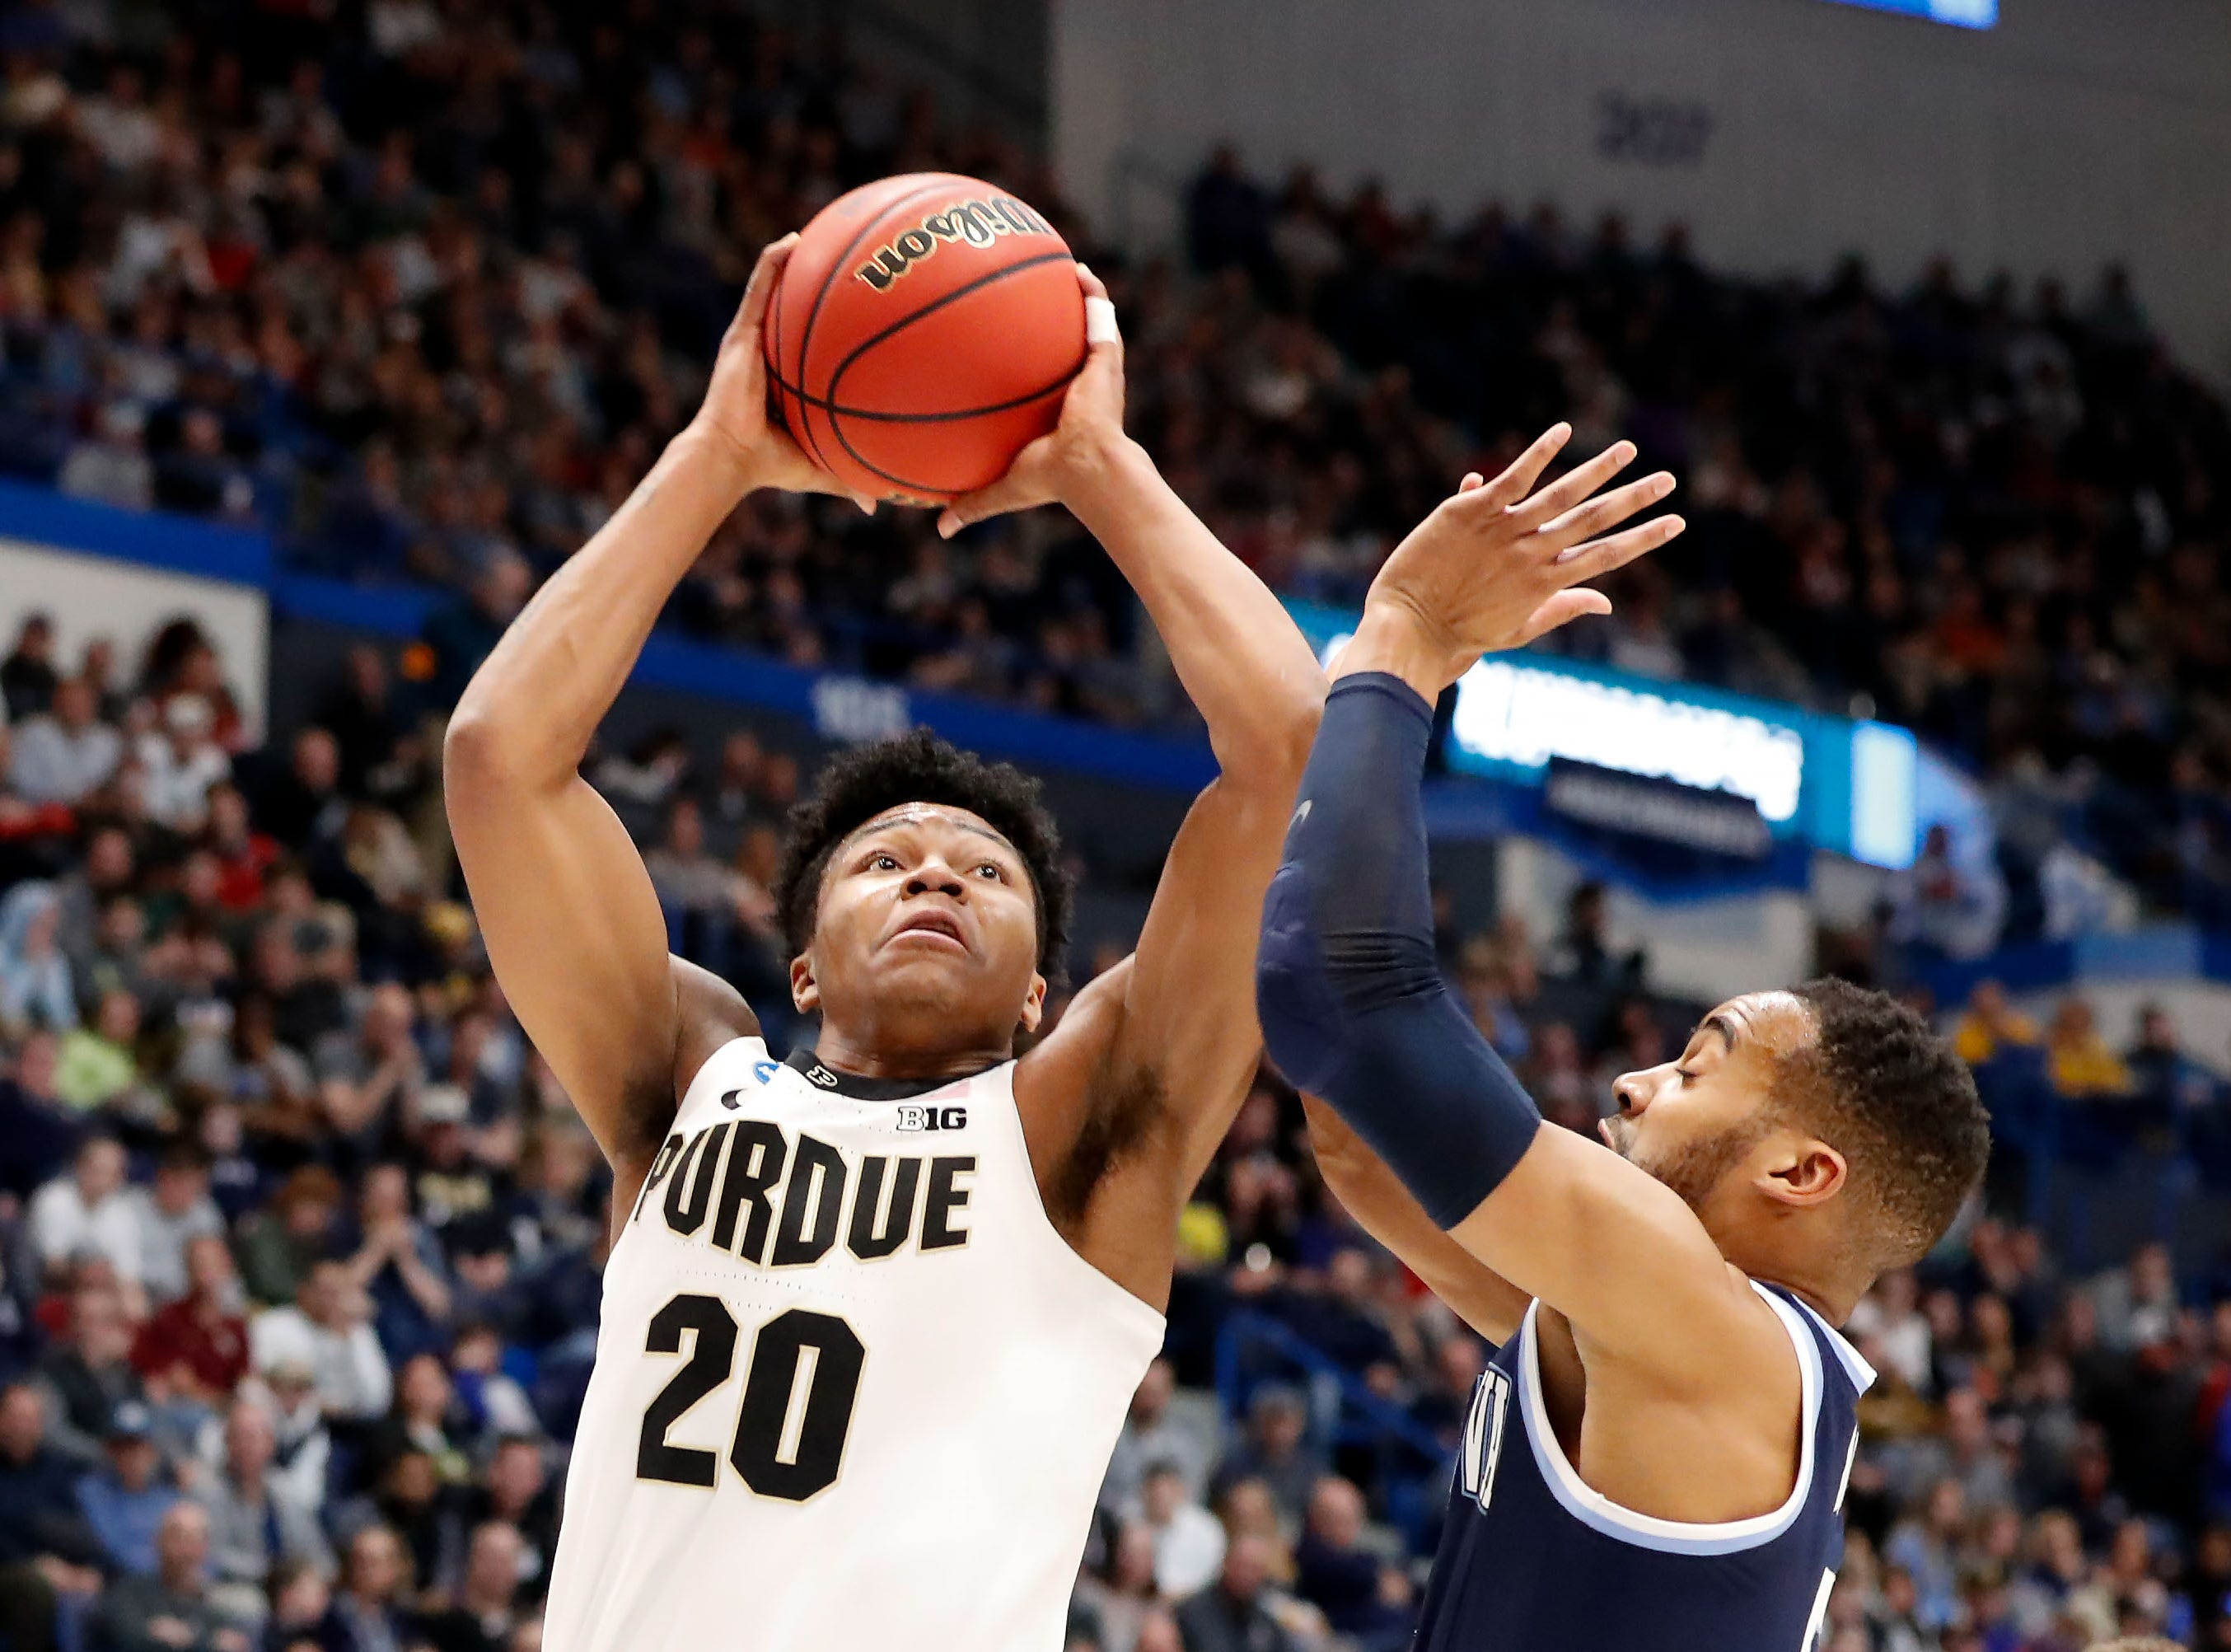 Mar 23, 2019; Hartford, CT, USA; Purdue Boilermakers guard Nojel Eastern (20) attempts a shot against Villanova Wildcats guard Phil Booth (5) during the first half of a game in the second round of the 2019 NCAA Tournament at XL Center. Mandatory Credit: David Butler II-USA TODAY Sports